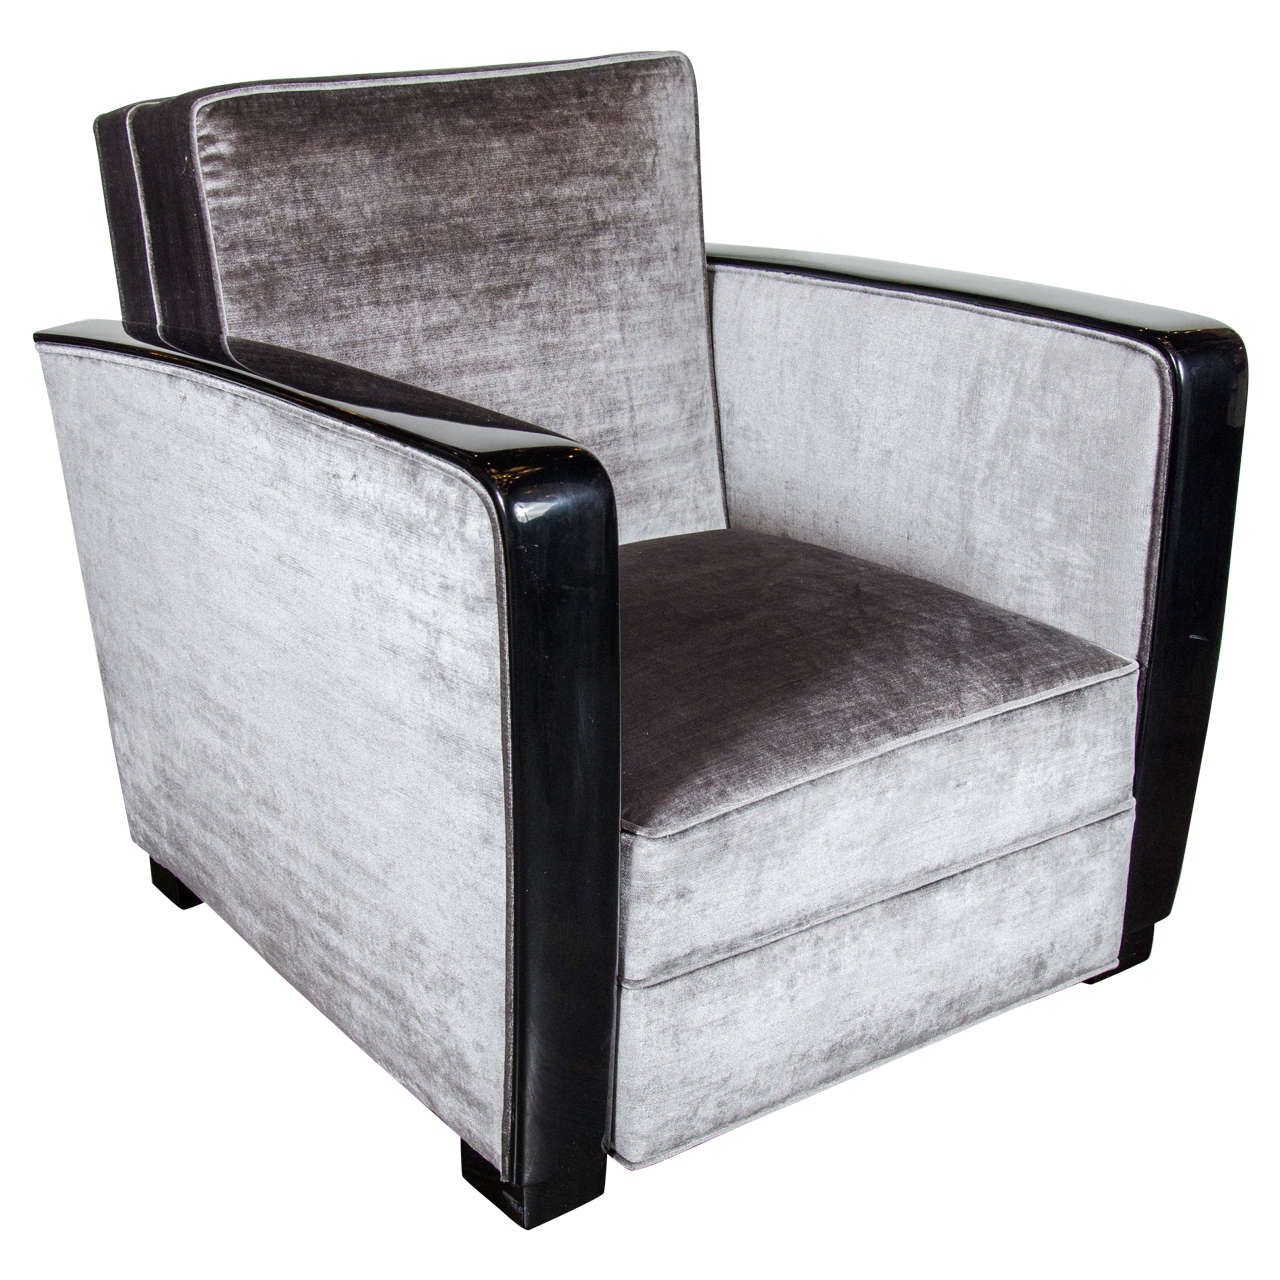 Bon Art Deco Club Chair In Black Lacquer With Velvet Upholstery For Sale